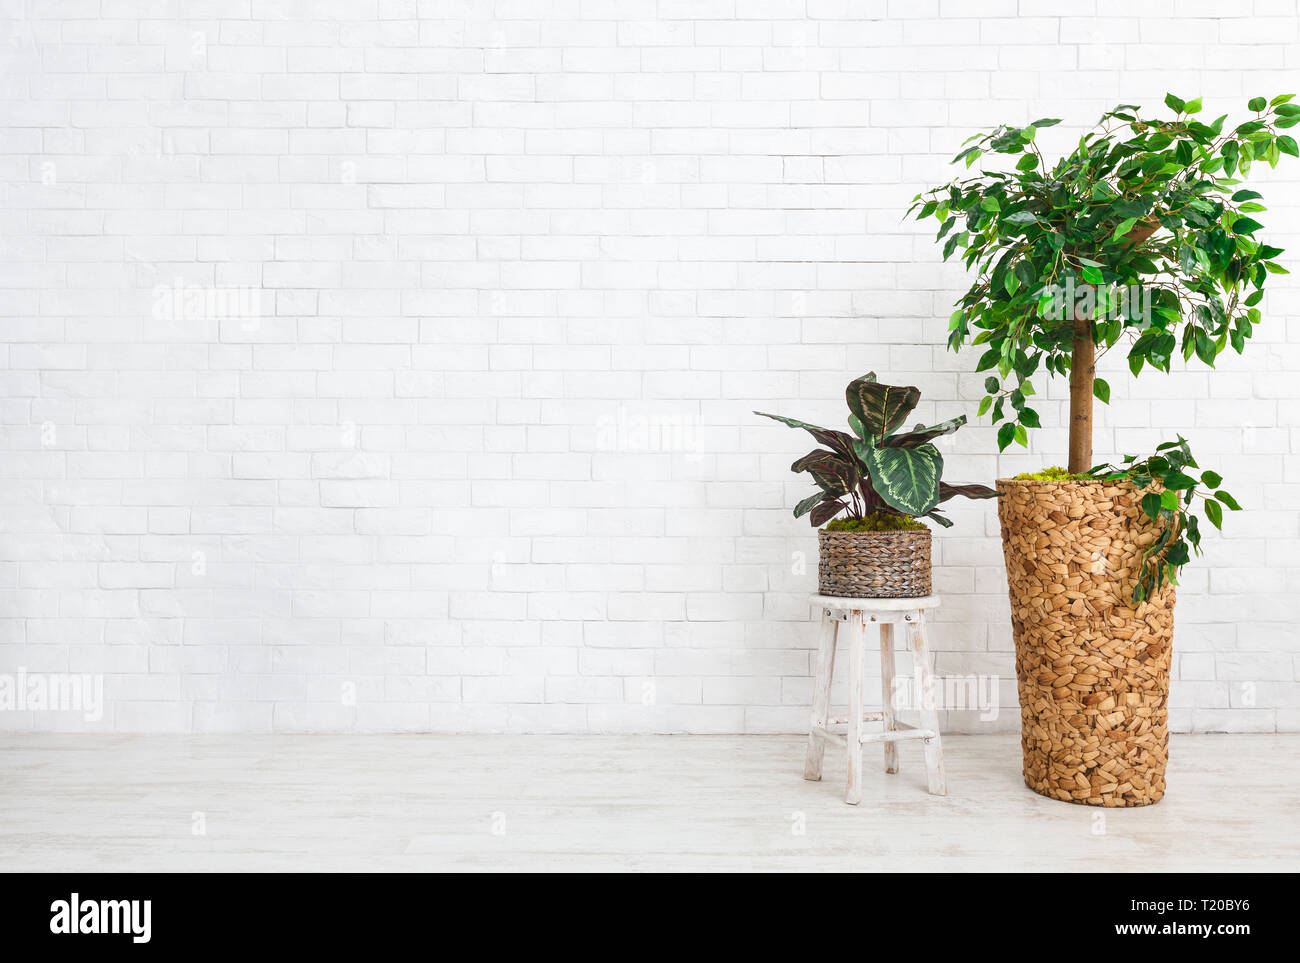 Home plants composition standing on floor at white brick wall background, copy space - Stock Image